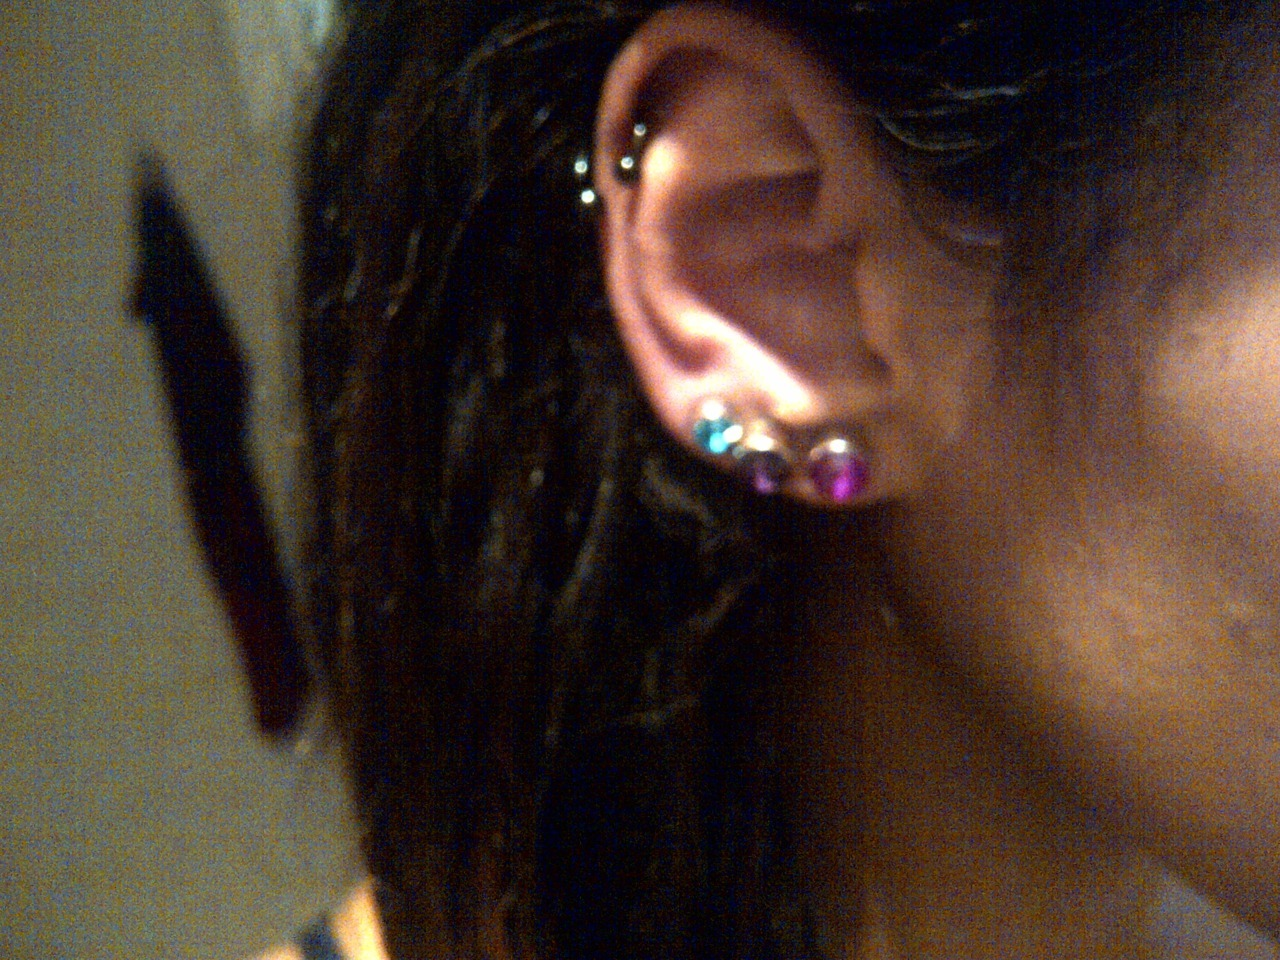 awfulmodifications:  fangs-:  Self pierced my 3rd lobe yay. Can't believe I did it myself. Fuck yeah ~    Because idiot's gunna idiot. What's awful: TERRIBLE initial jewellery, poor quality, butterfly backed (perfect for trapping nasties against the new healing piercing), and that it was self pierced by a clearly non-professional in non-professional means with non-professional equipment. Shoving a dirty needle through your lobes? Not cool. Modification: You do it right, or not at all.